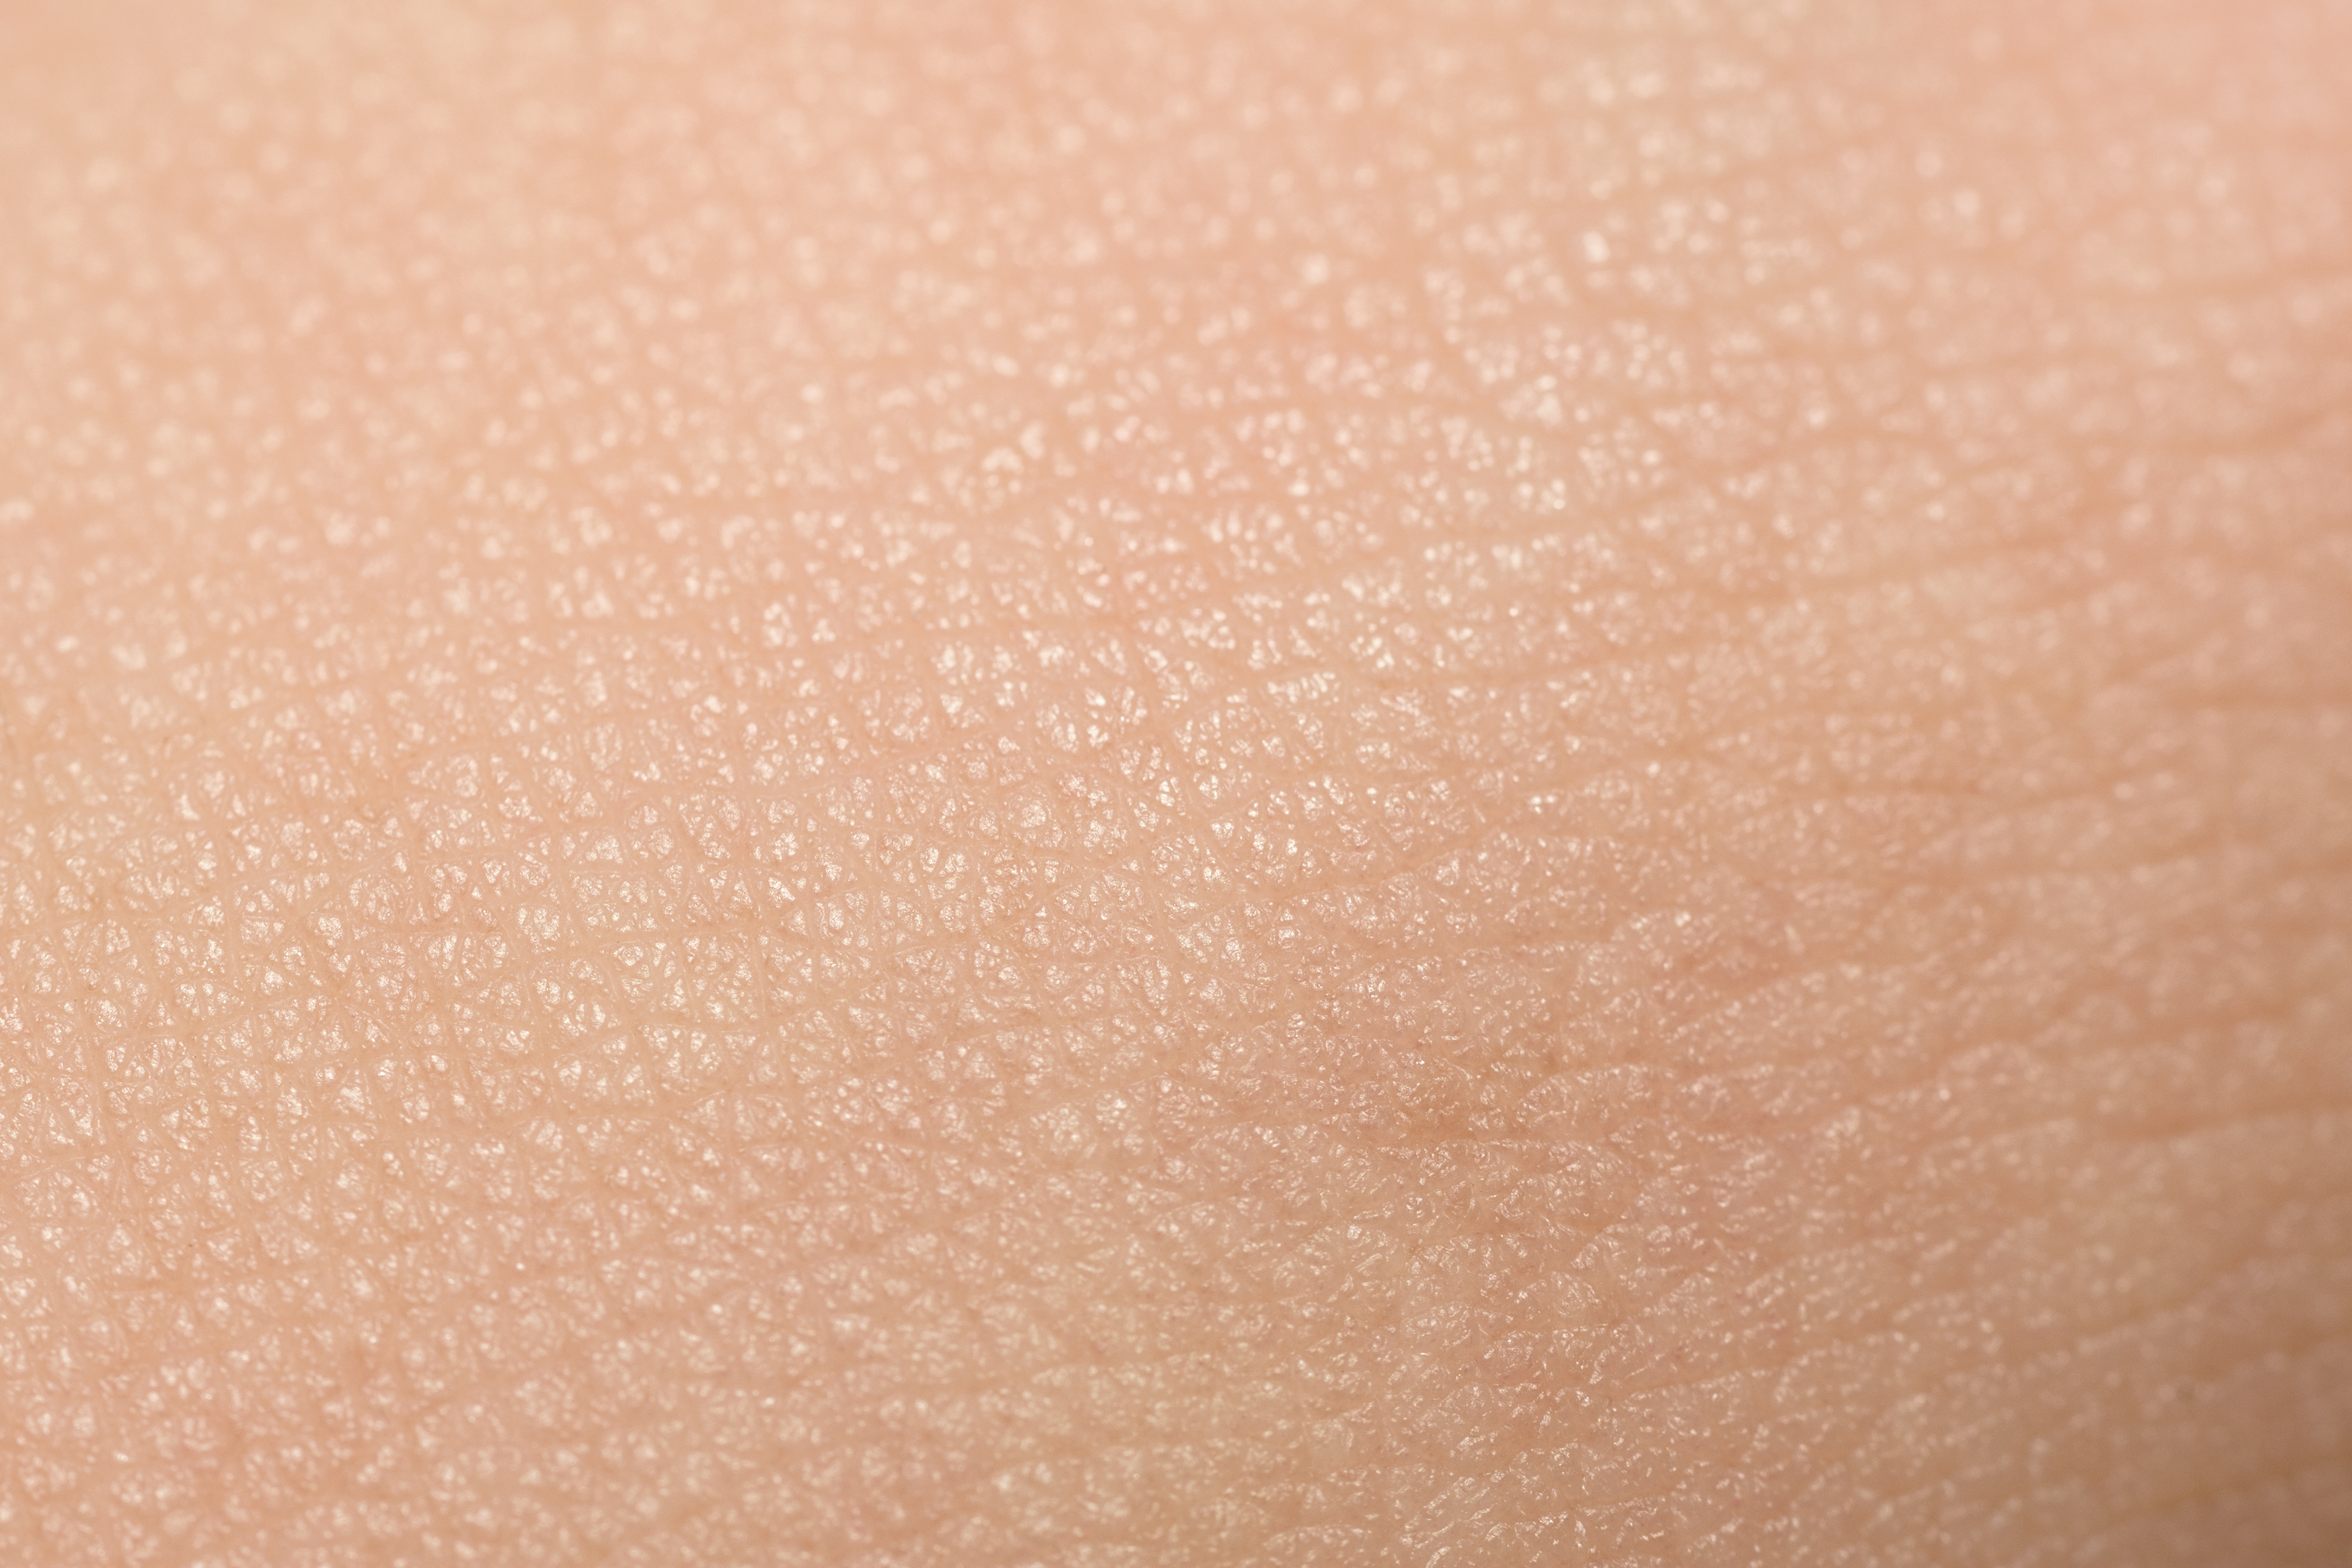 Psoriasis increases the risk of 'CFS'